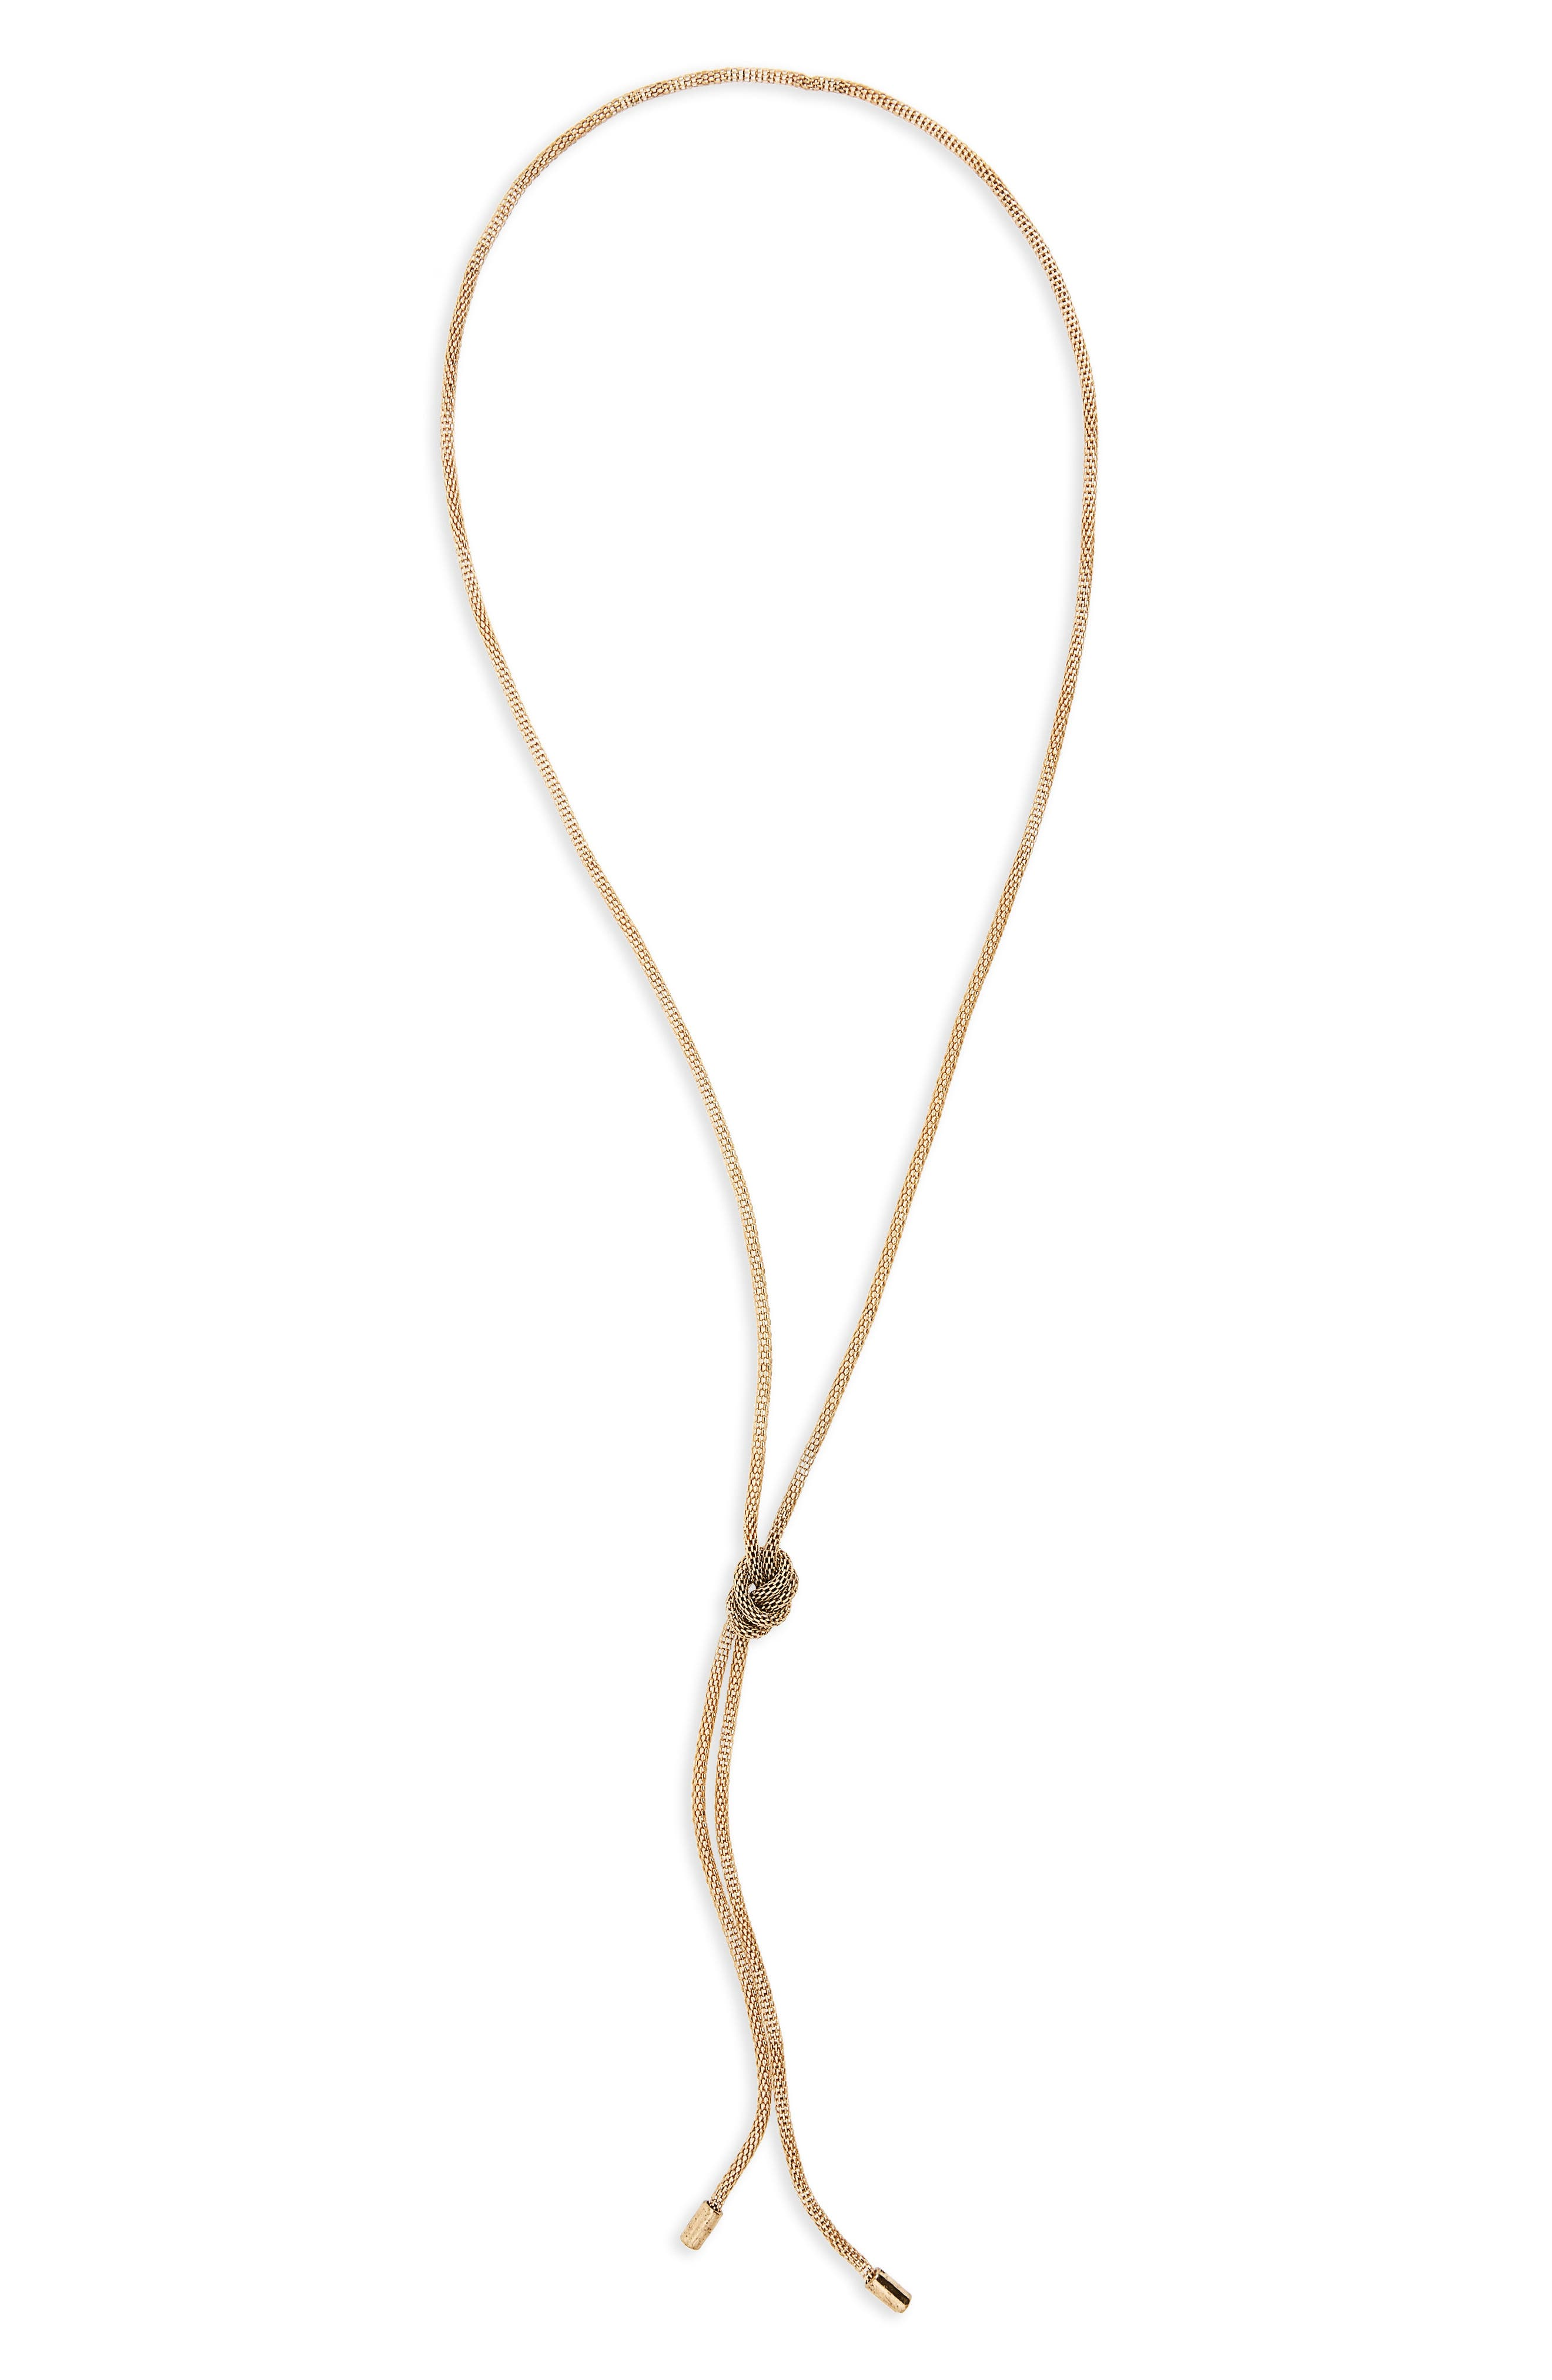 Knotted Rope Chain Necklace,                             Main thumbnail 1, color,                             Gold